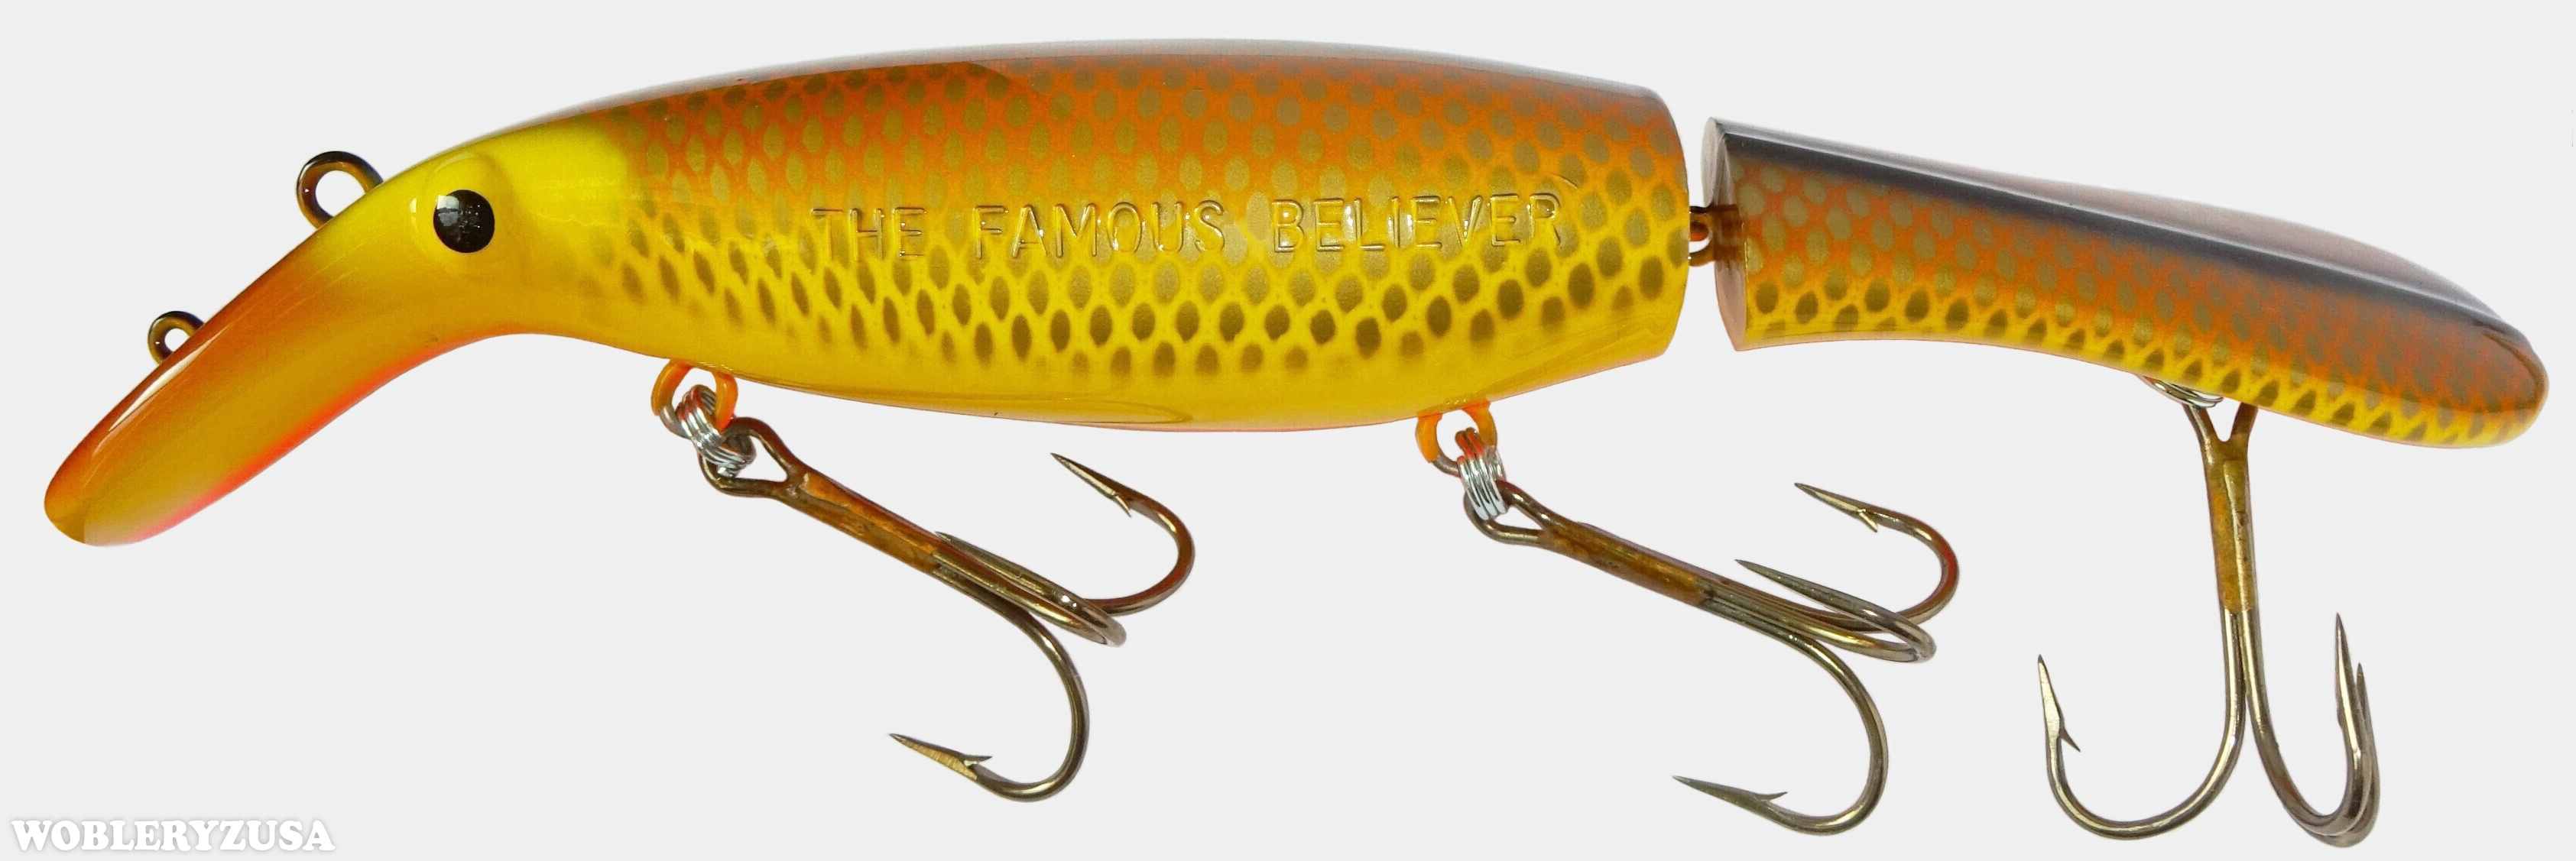 Wobler BELIEVER 25 cm - Hot Walleye